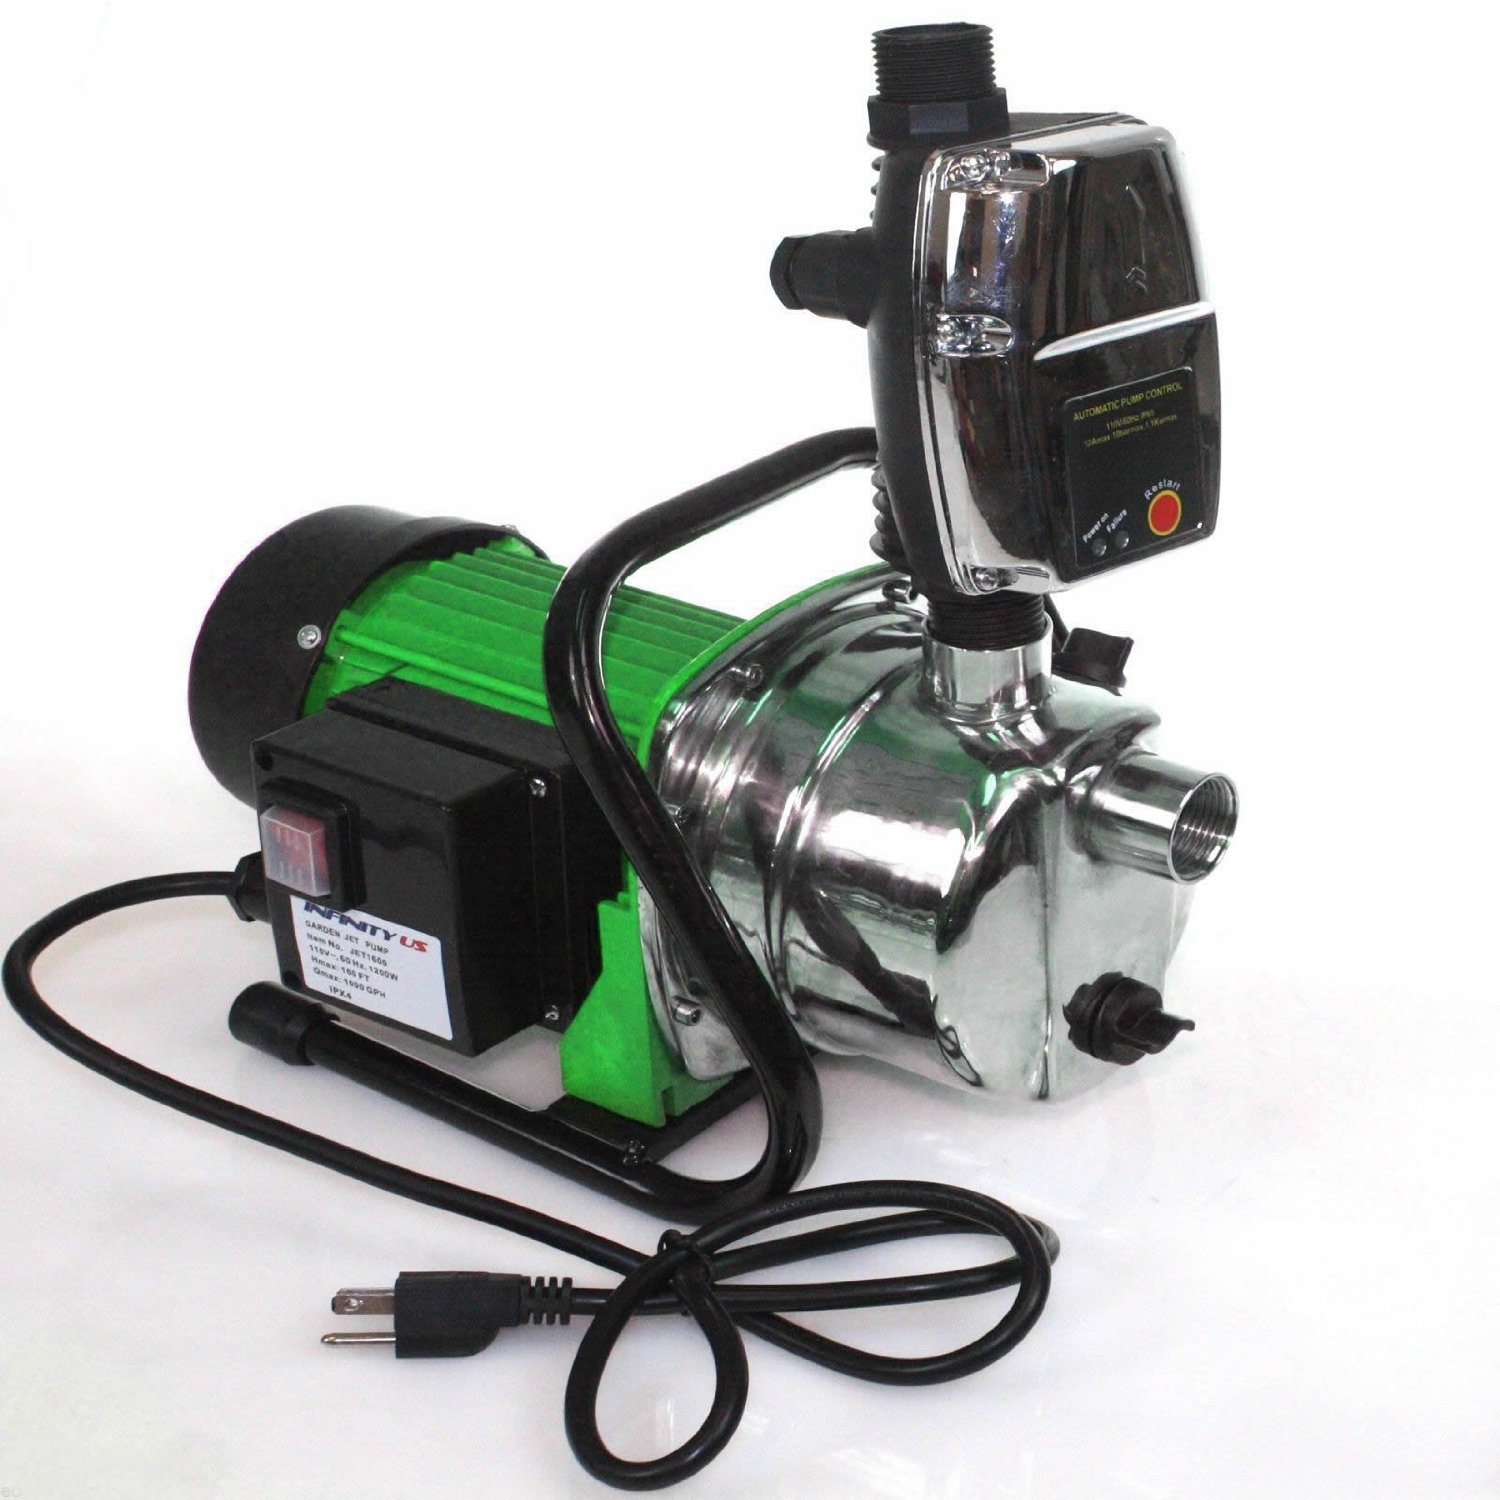 Combo 1.6 Hp 1200w Jet Shallow Water Well Booster Pump W/ Pressure Controller